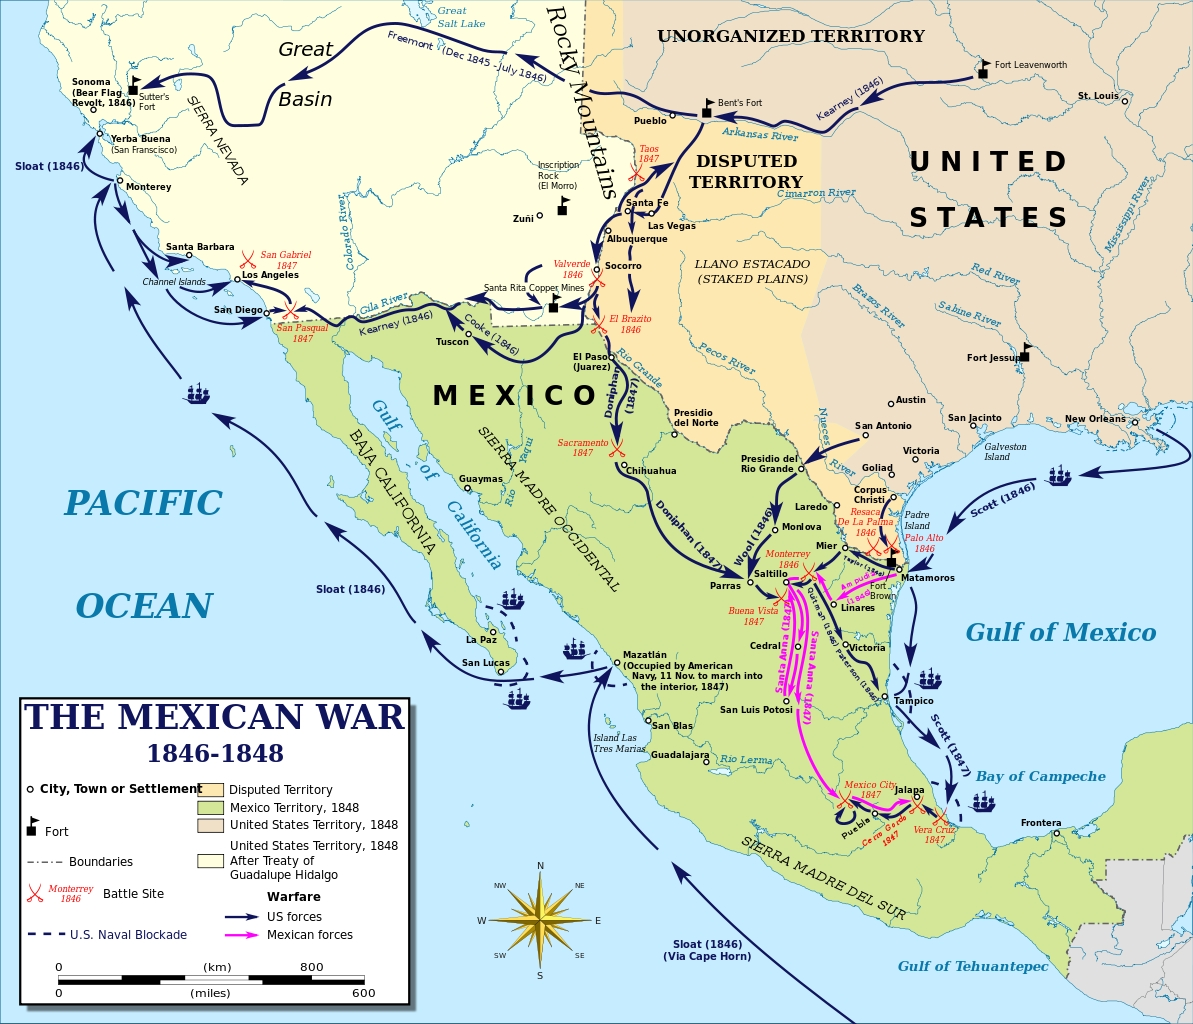 the background of the united states mexican war The mexican american war was a conflict between the united states and mexico introduction/background the mexican american war began on april 25 the united states - mexican war (1846-1848) the united states.